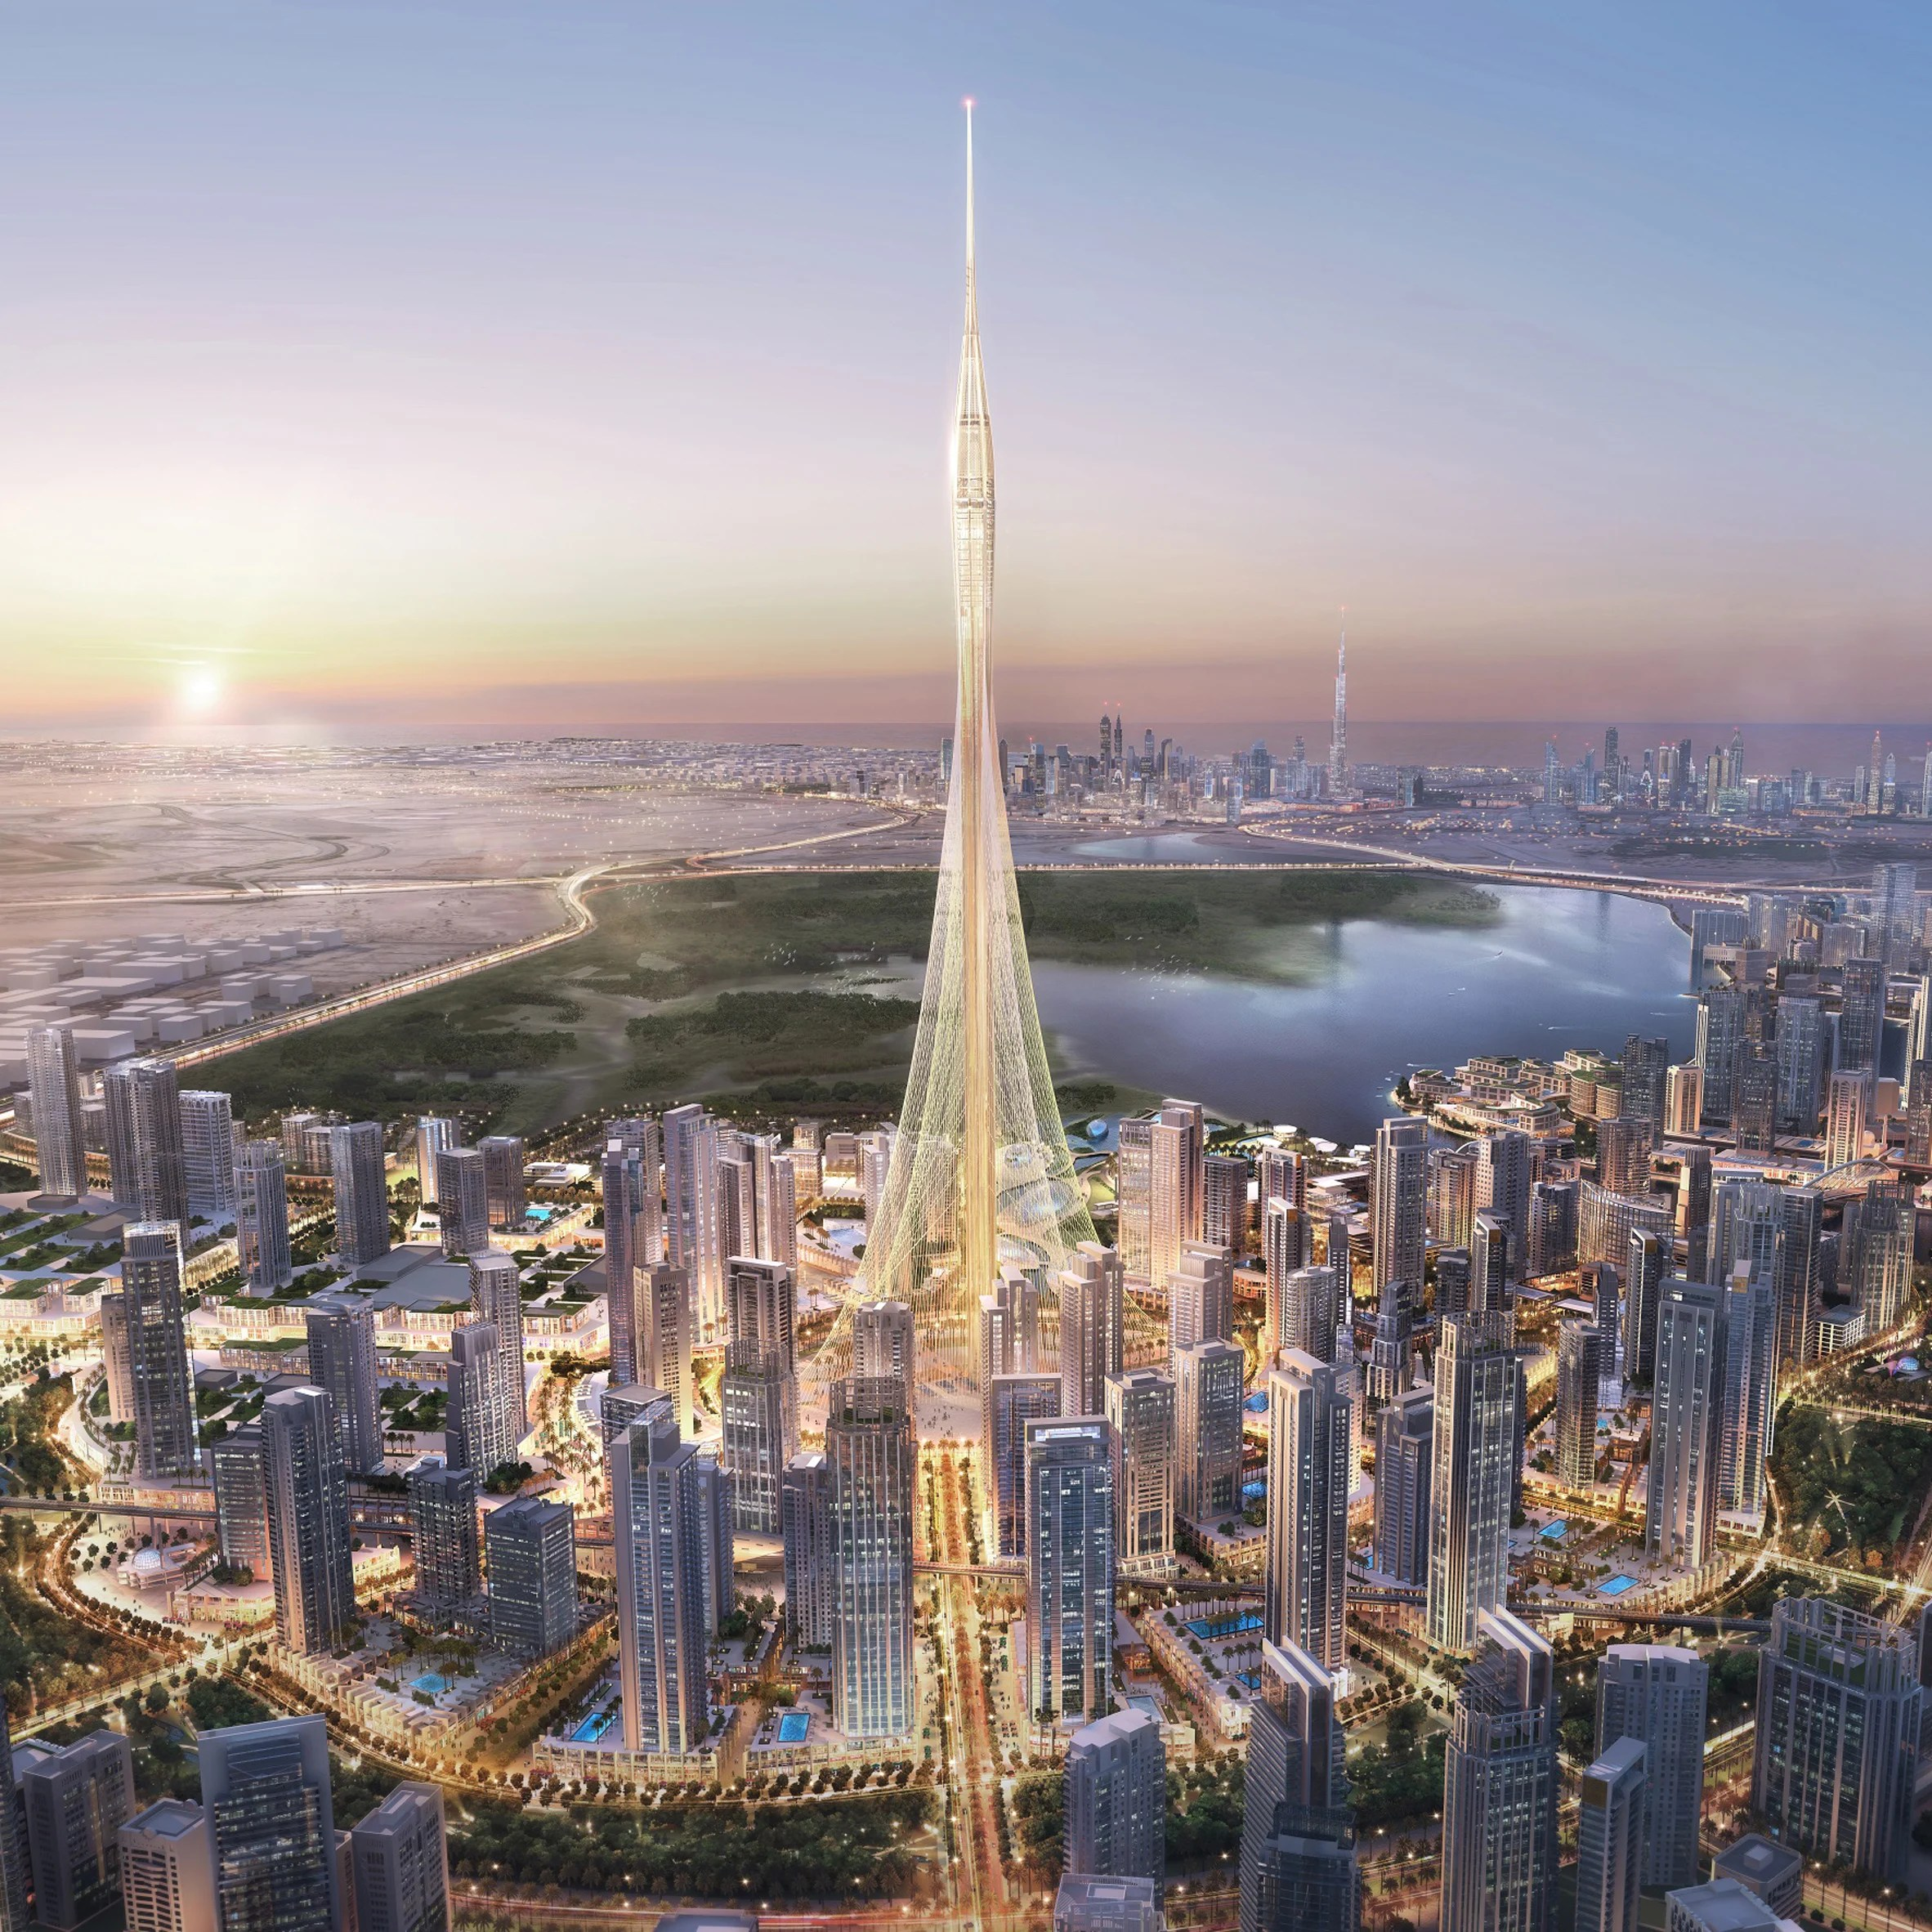 Calatravas Dubai Creek observation tower breaks ground